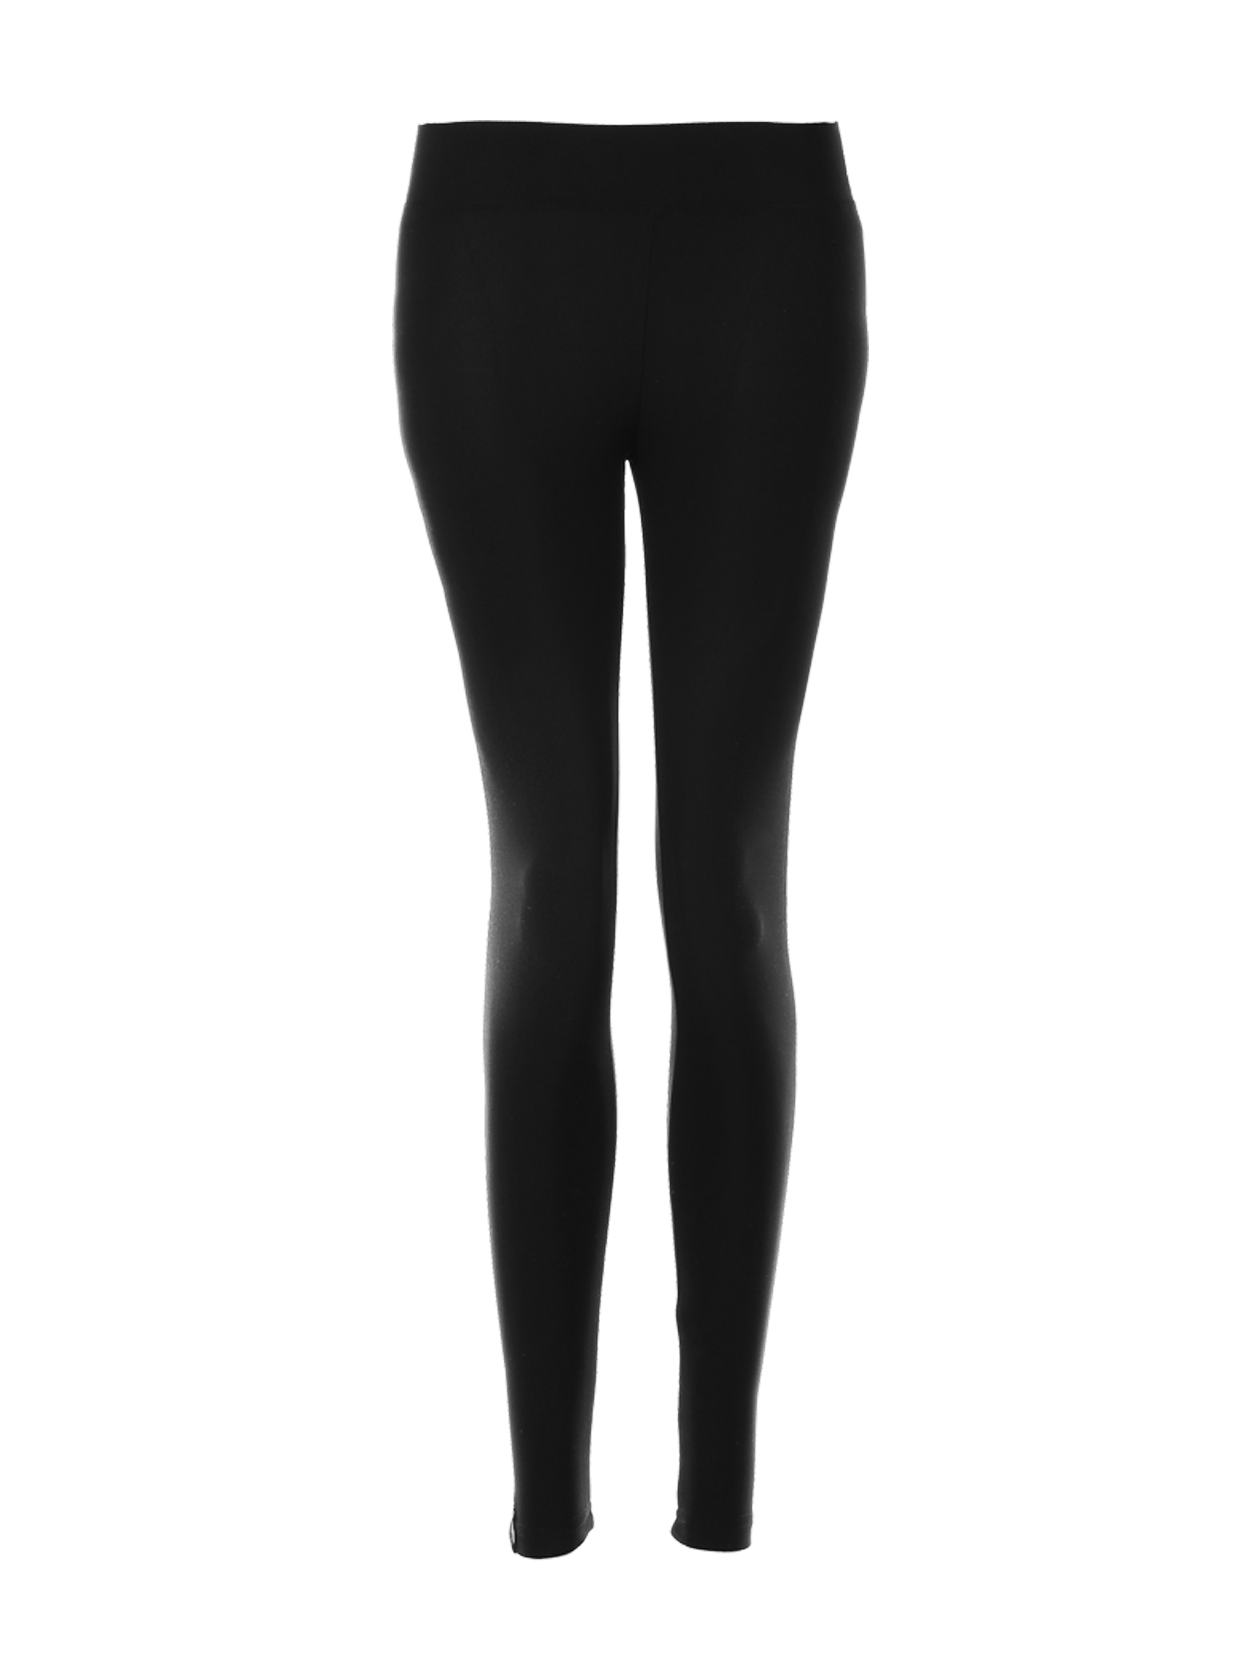 Womens leggings Black Star FamilyWomens leggings by Black Star Wear. Tight fit, polyamid - smooth strertch fabric, high-shine finish, regular waist with an elastic band. Small brands label on the right side. Avaliable in black.<br><br>size: L<br>color: Black<br>gender: female